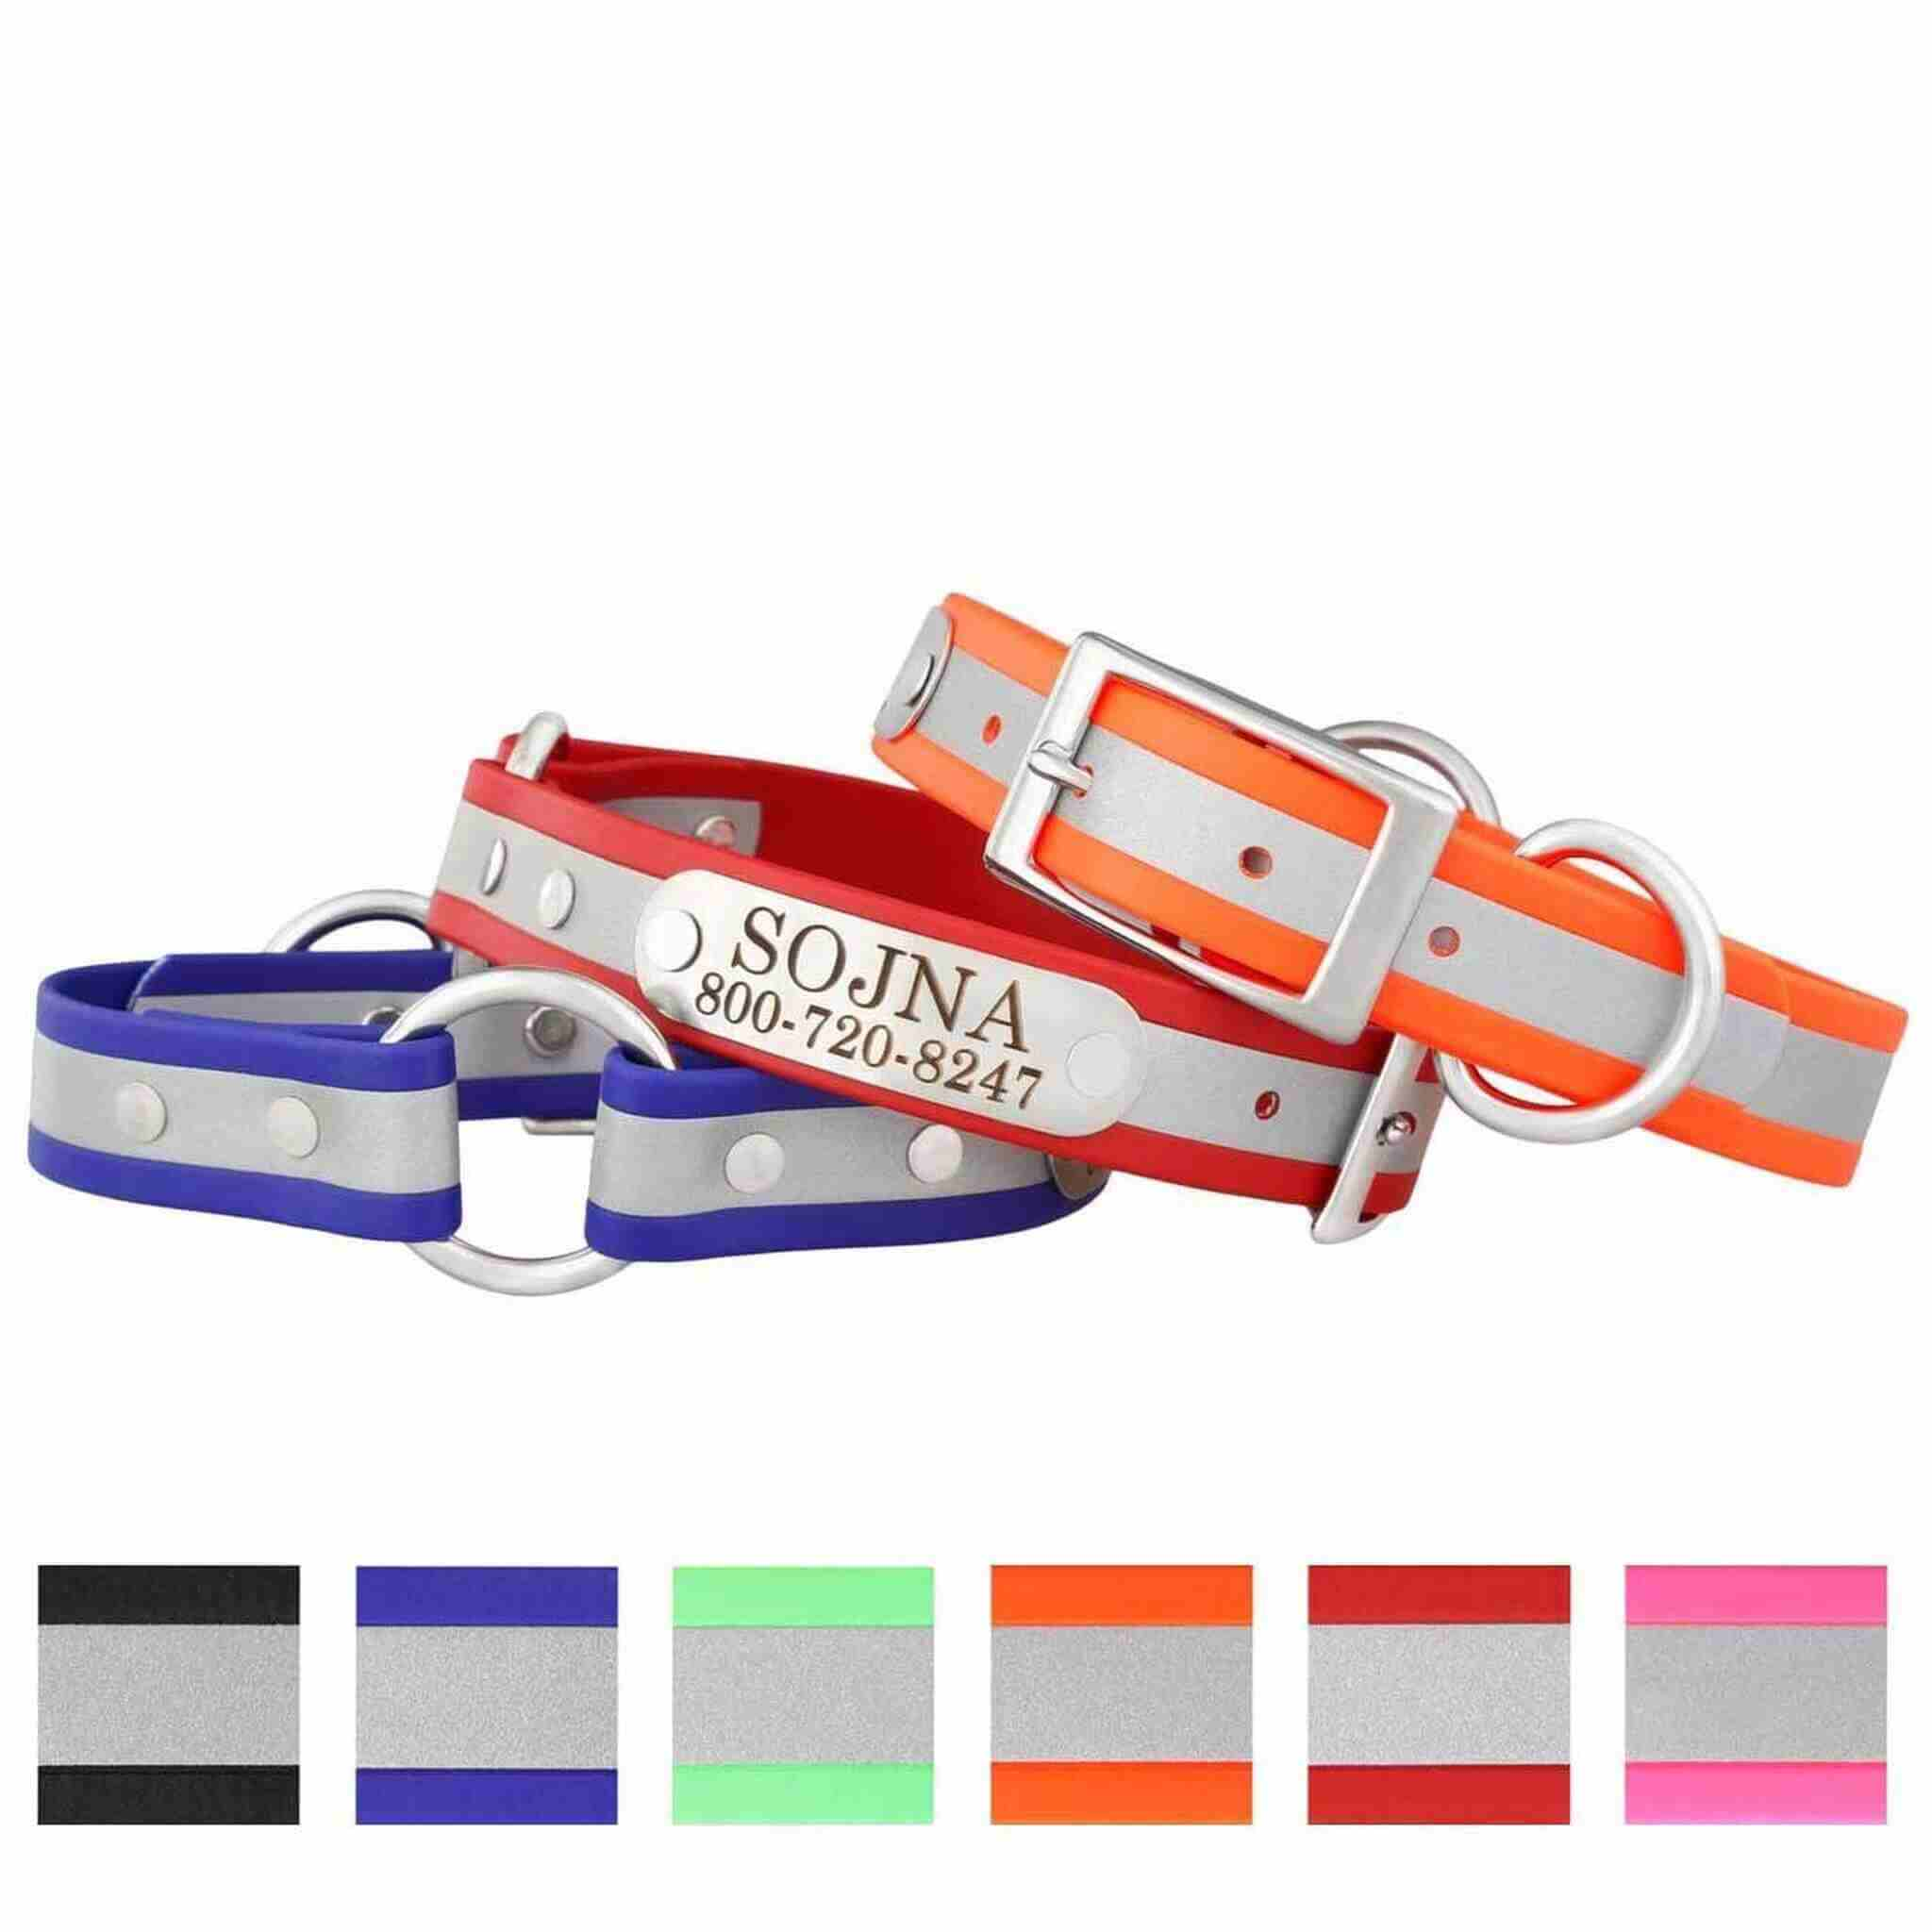 Personalized Waterproof Reflective Safety Dog Collars